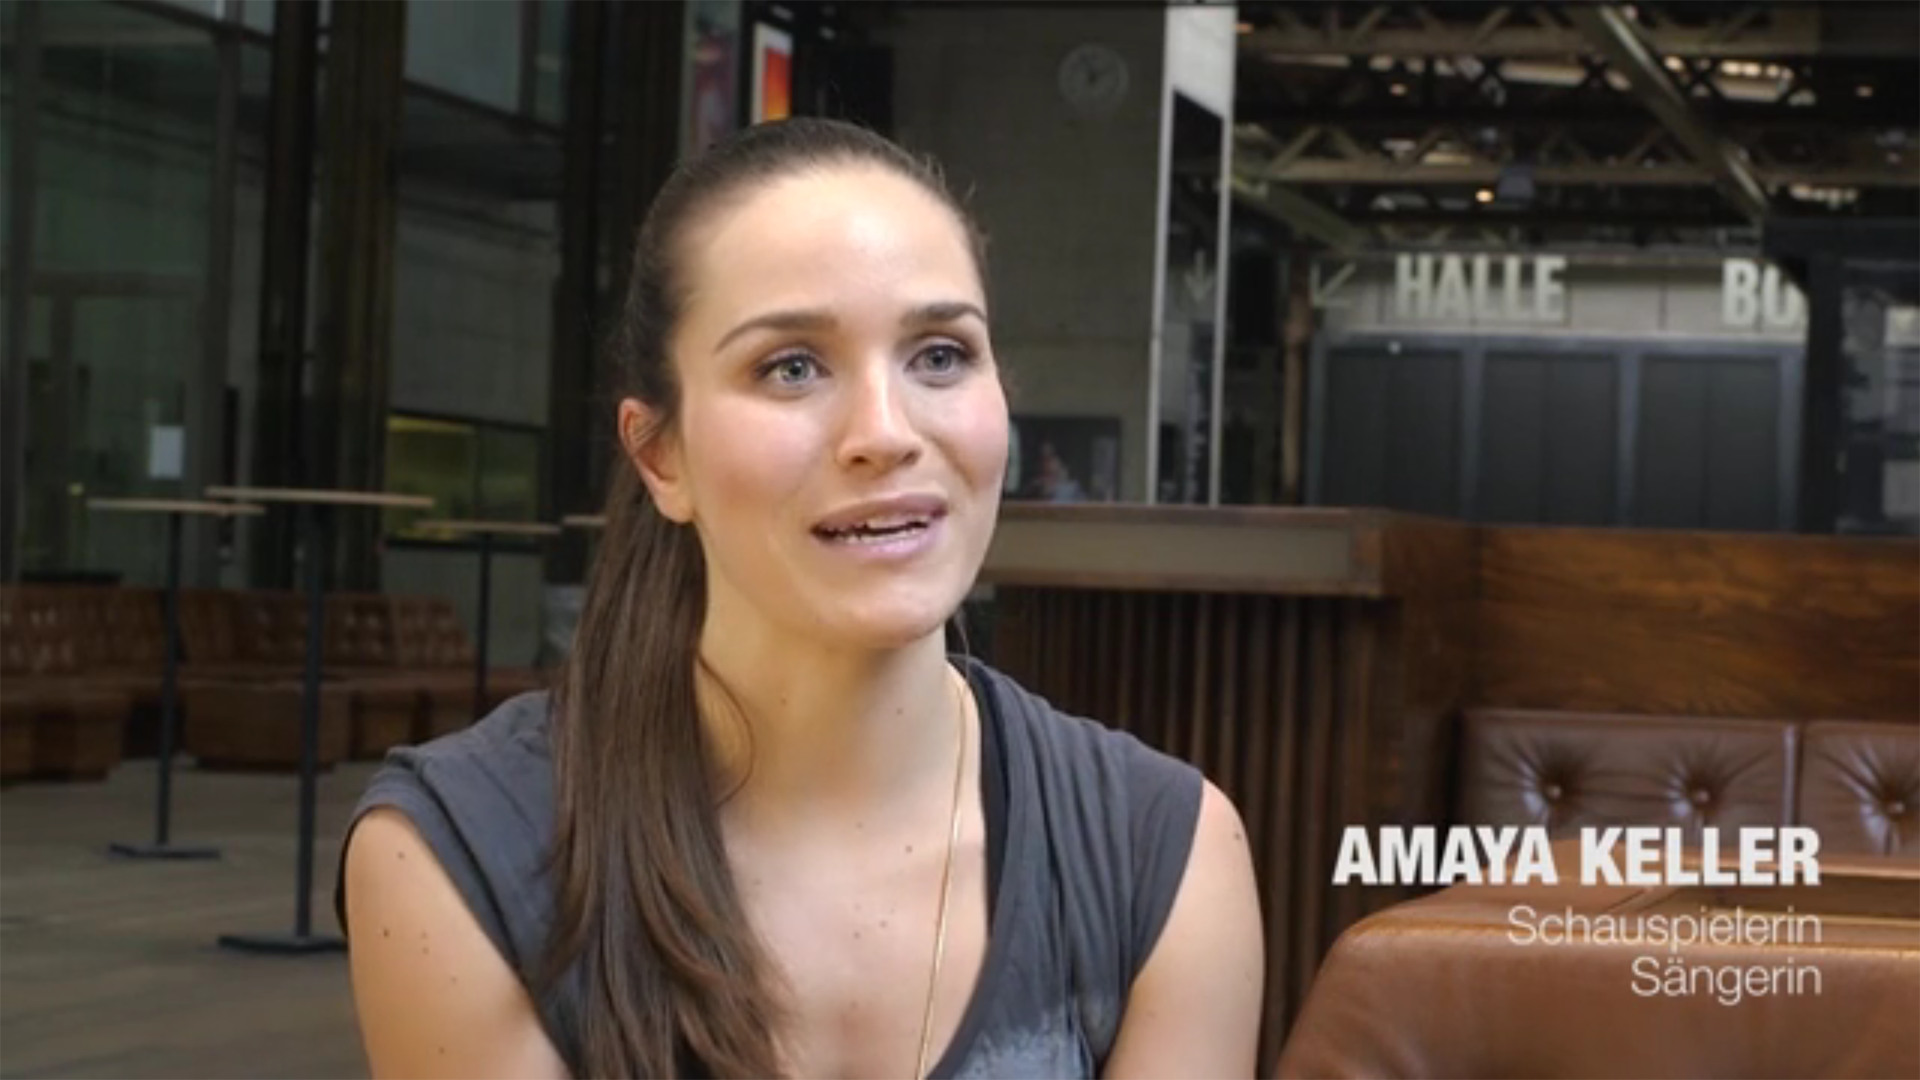 AMAYA KELLER – Portrait / Interview